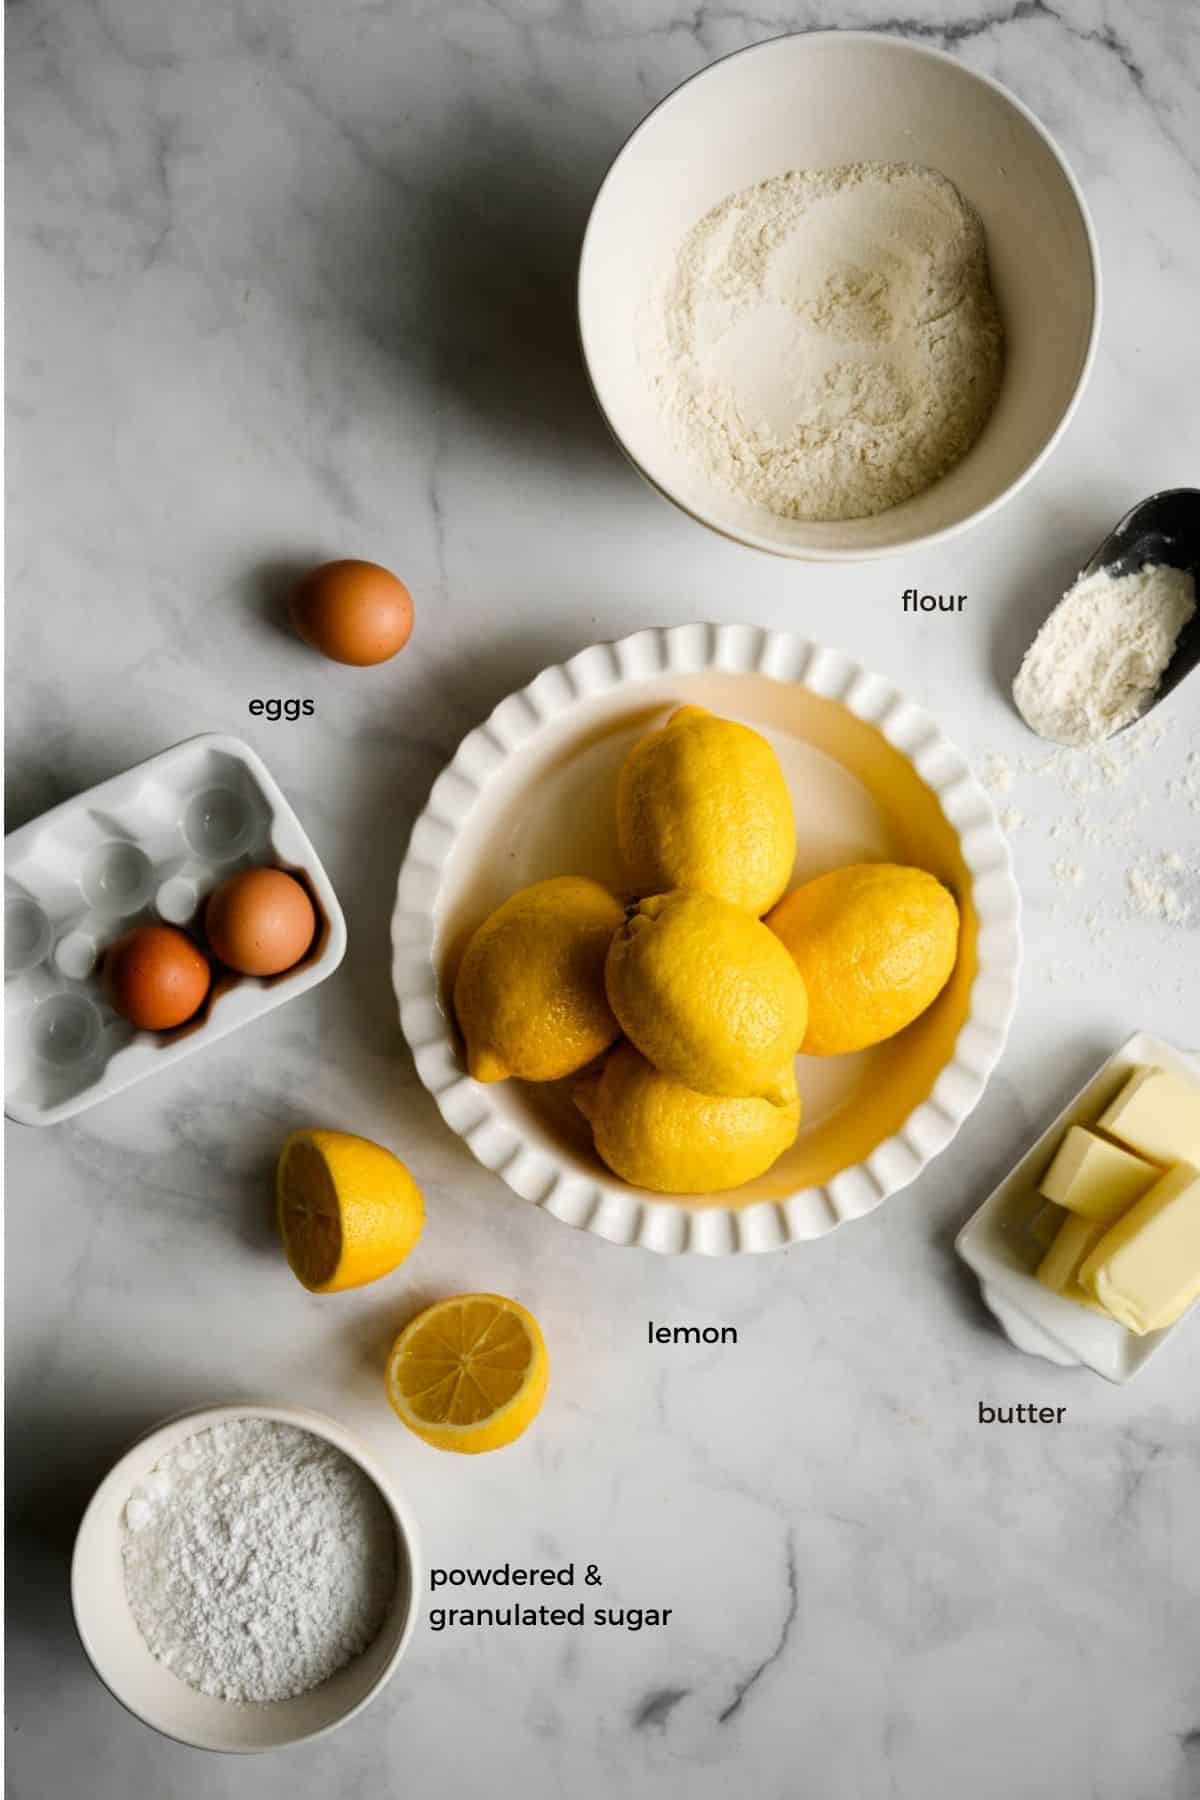 ingredients including flour, powdered sugar, eggs, lemons and butter.